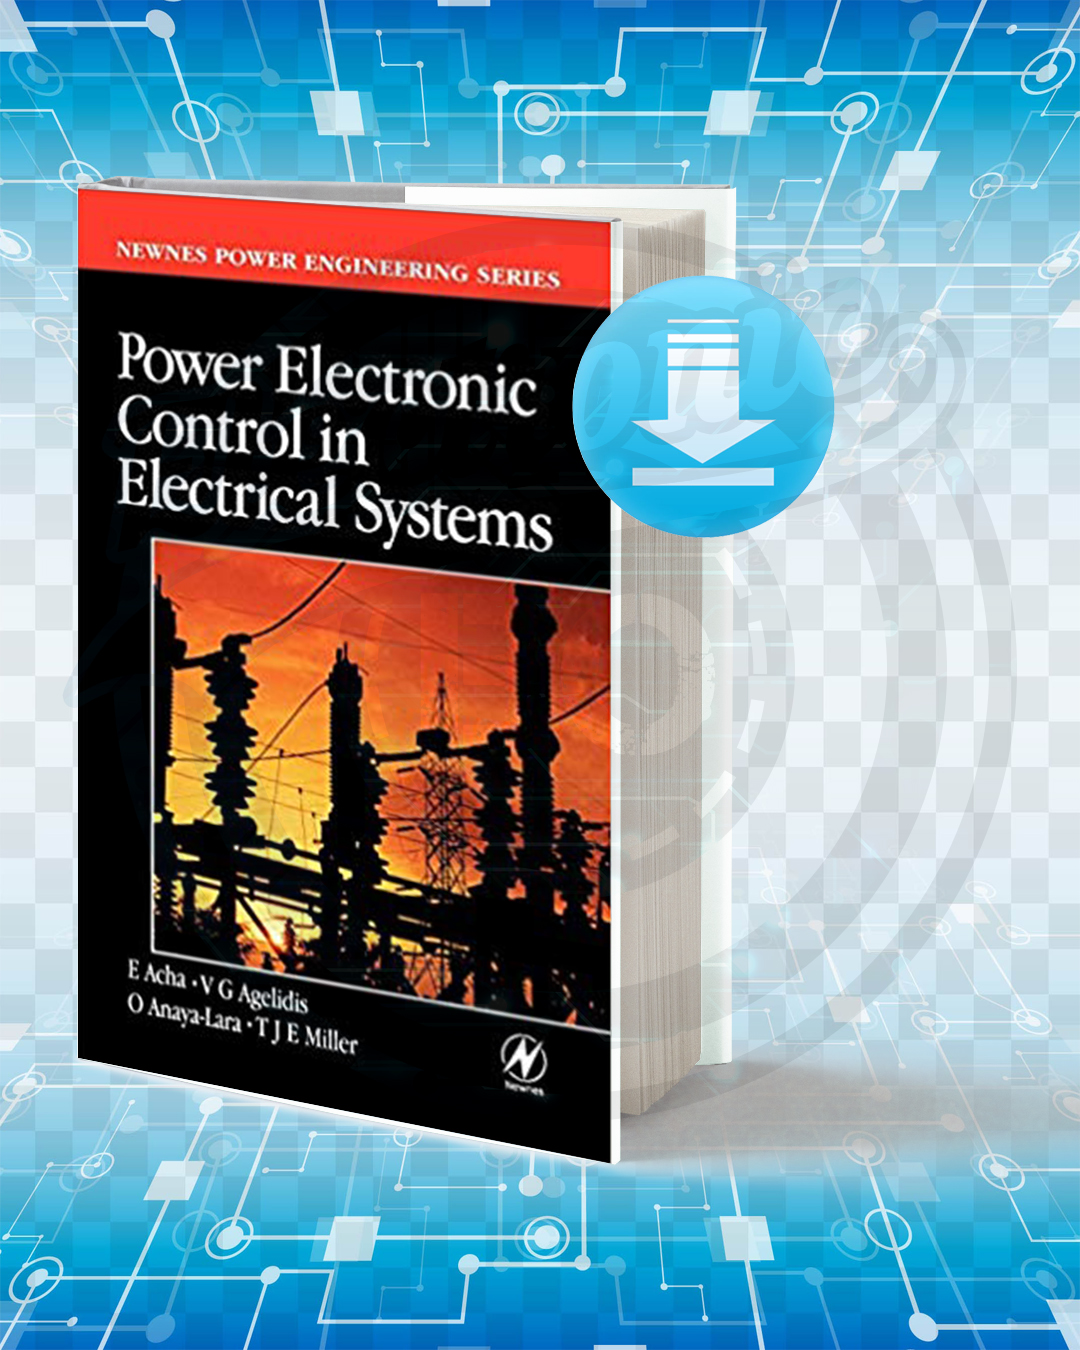 Free Book Power Electronic Control in Electrical Systems pdf.